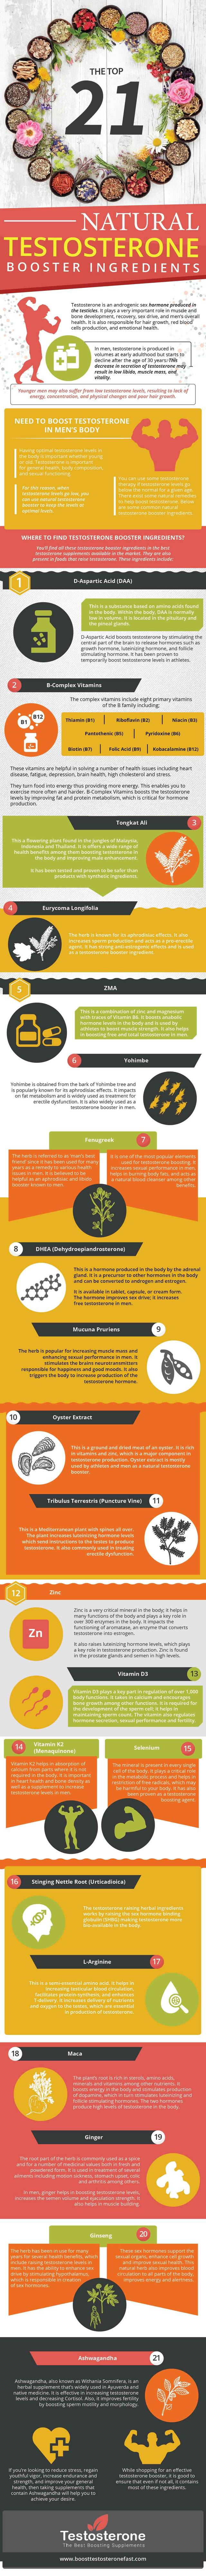 Natural testosterone booster ingredient infographic